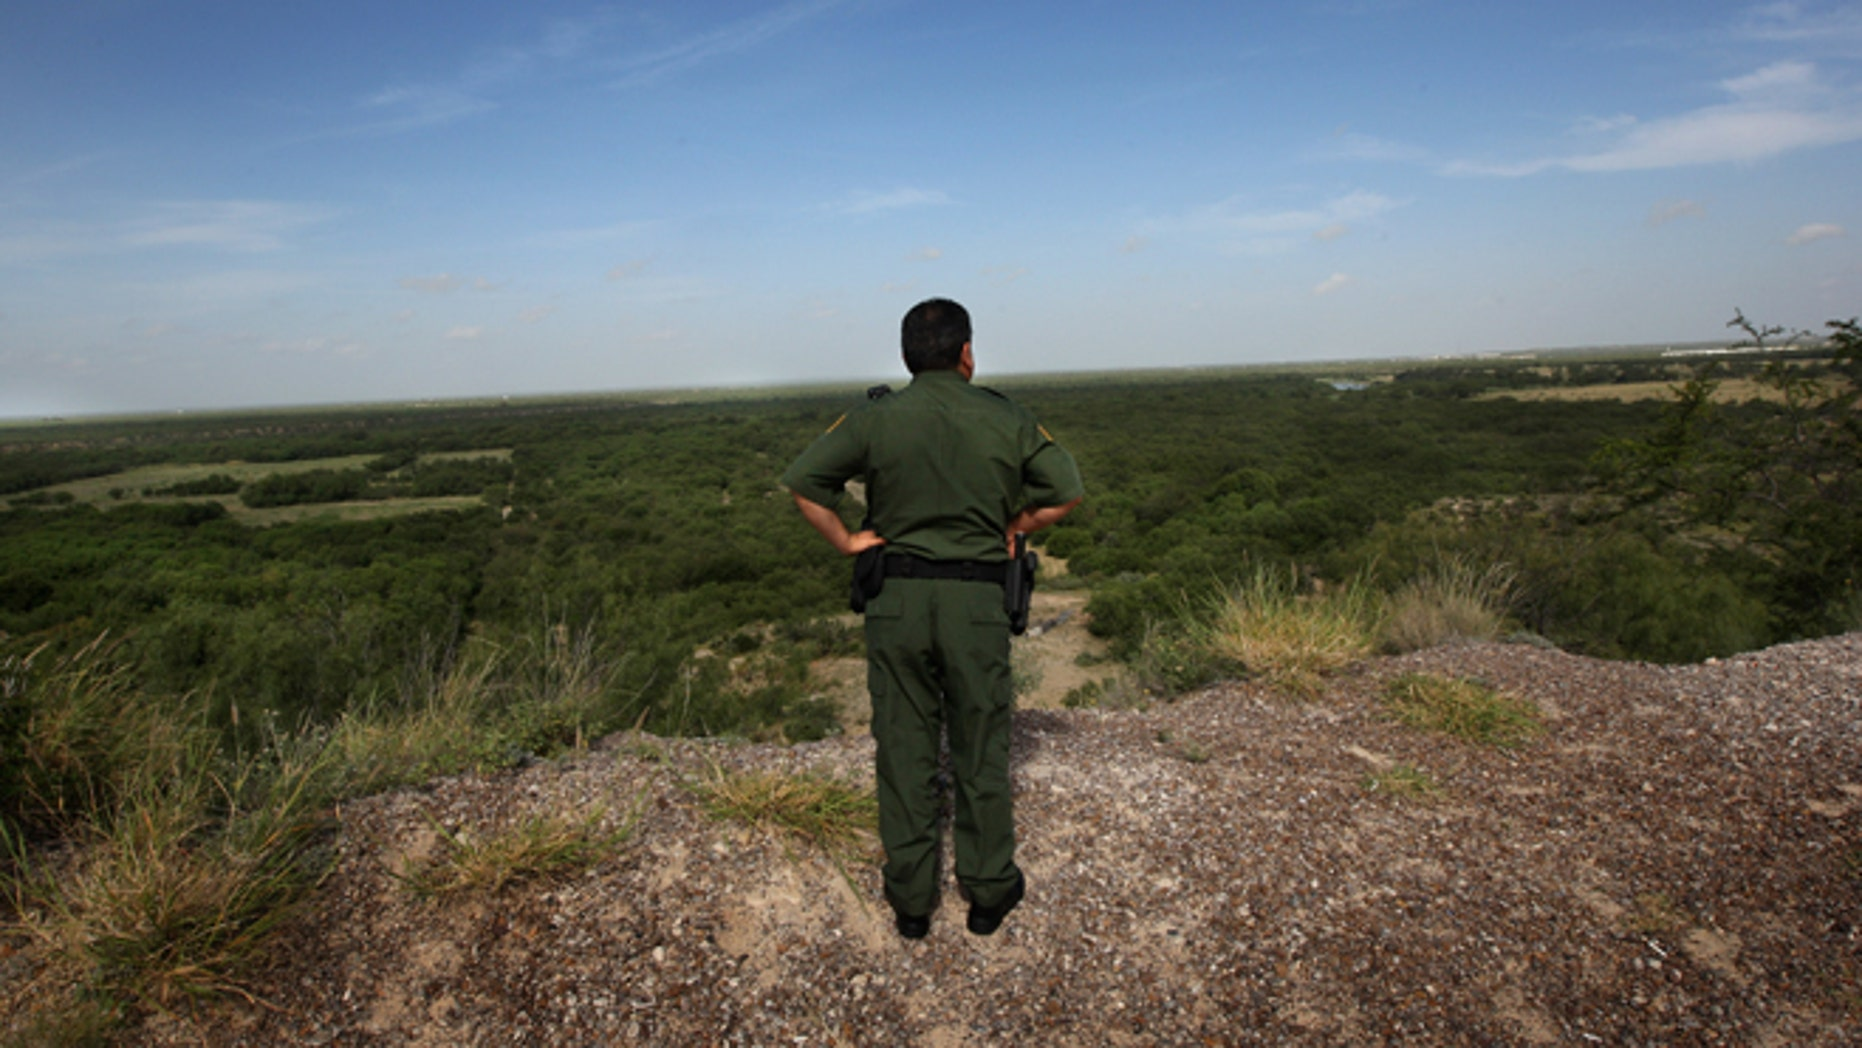 LAREDO, TX - AUGUST 07:  U.S. Border Patrol supervisor Eugenio Rodriguez looks over the landscape near the Rio Grande River and surrounding environs August 7, 2008 in Laredo, Texas. U.S. Border patrol agents constantly monitor the border for illegal crossings, as part of their efforts to stop illegal immigrants, drug traffickers and terrorists from crossing illegally into the United States. Securing the nation's borders is an important topic in this year's presidential campaign. Since 9/11, the Border Patrol has grown by about a third to more than 15,000 agents.  (Photo by John Moore/Getty Images)